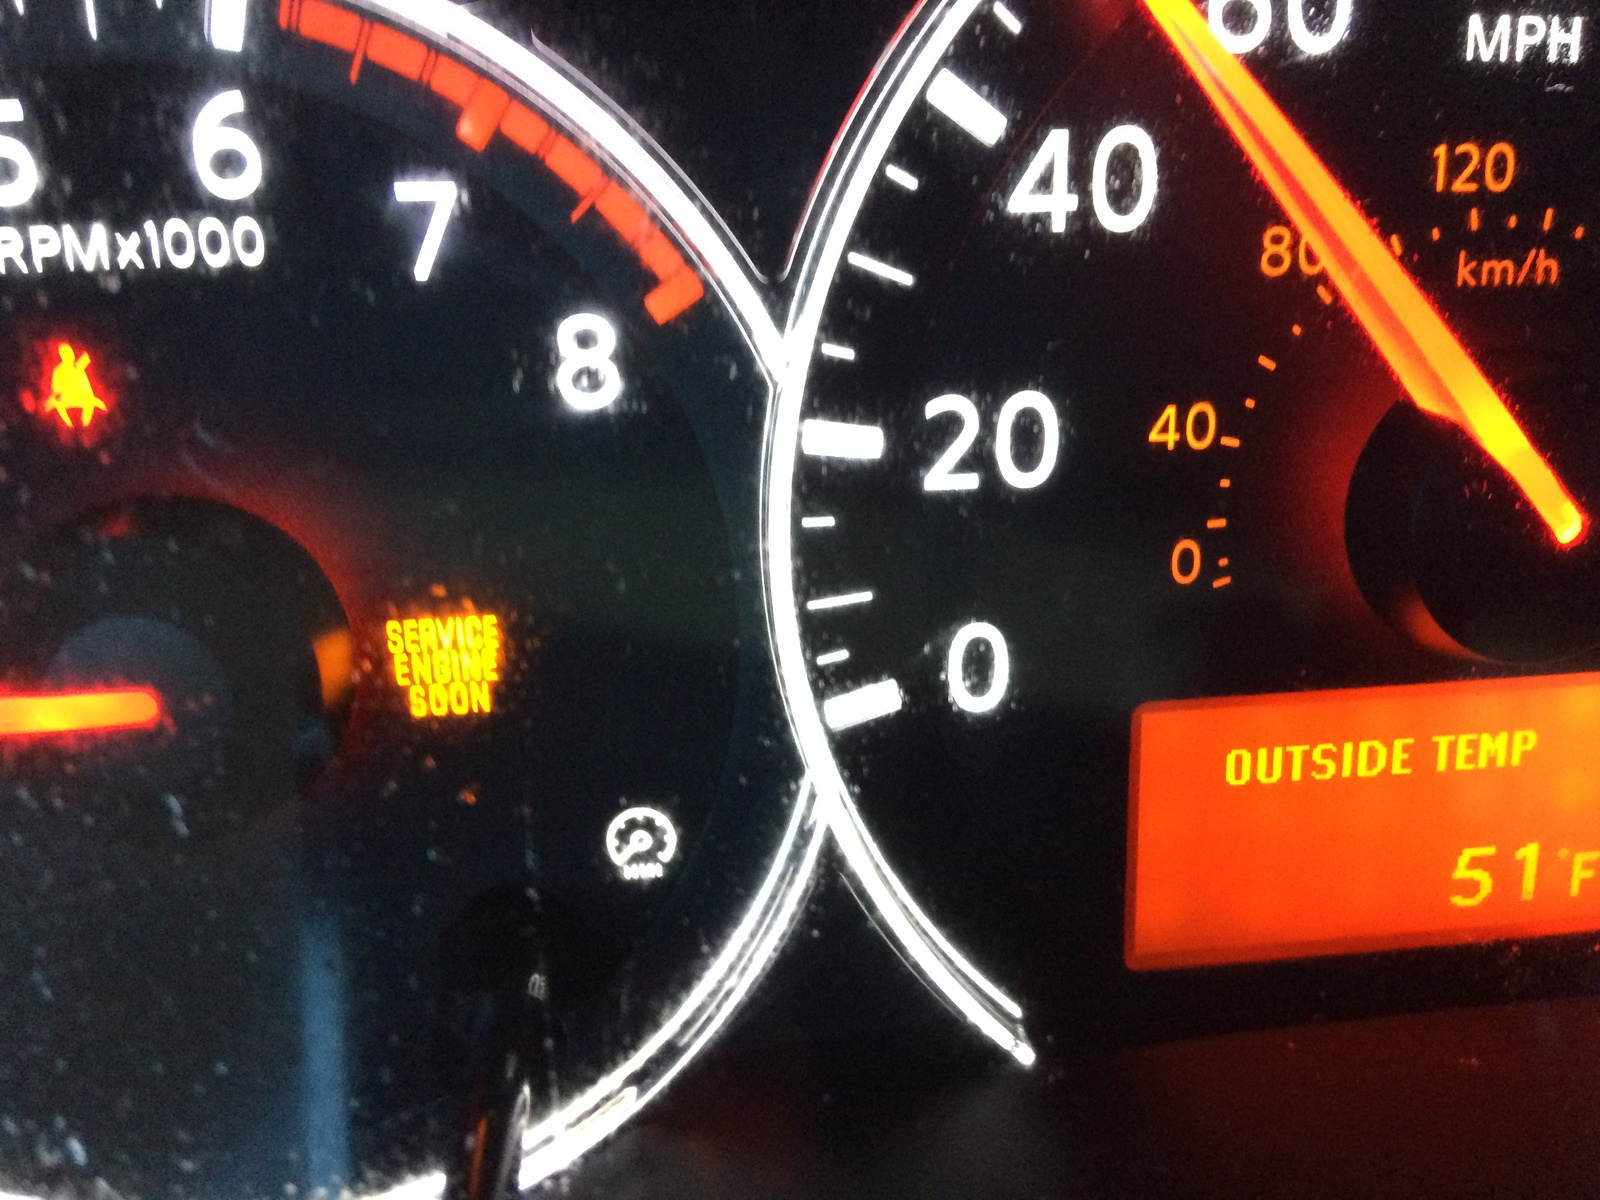 nissan altima questions warning light cargurusmy son was messing around in my car while it was parked it\u0027s a daytime running lights symbol from what i was told how do i get it off?